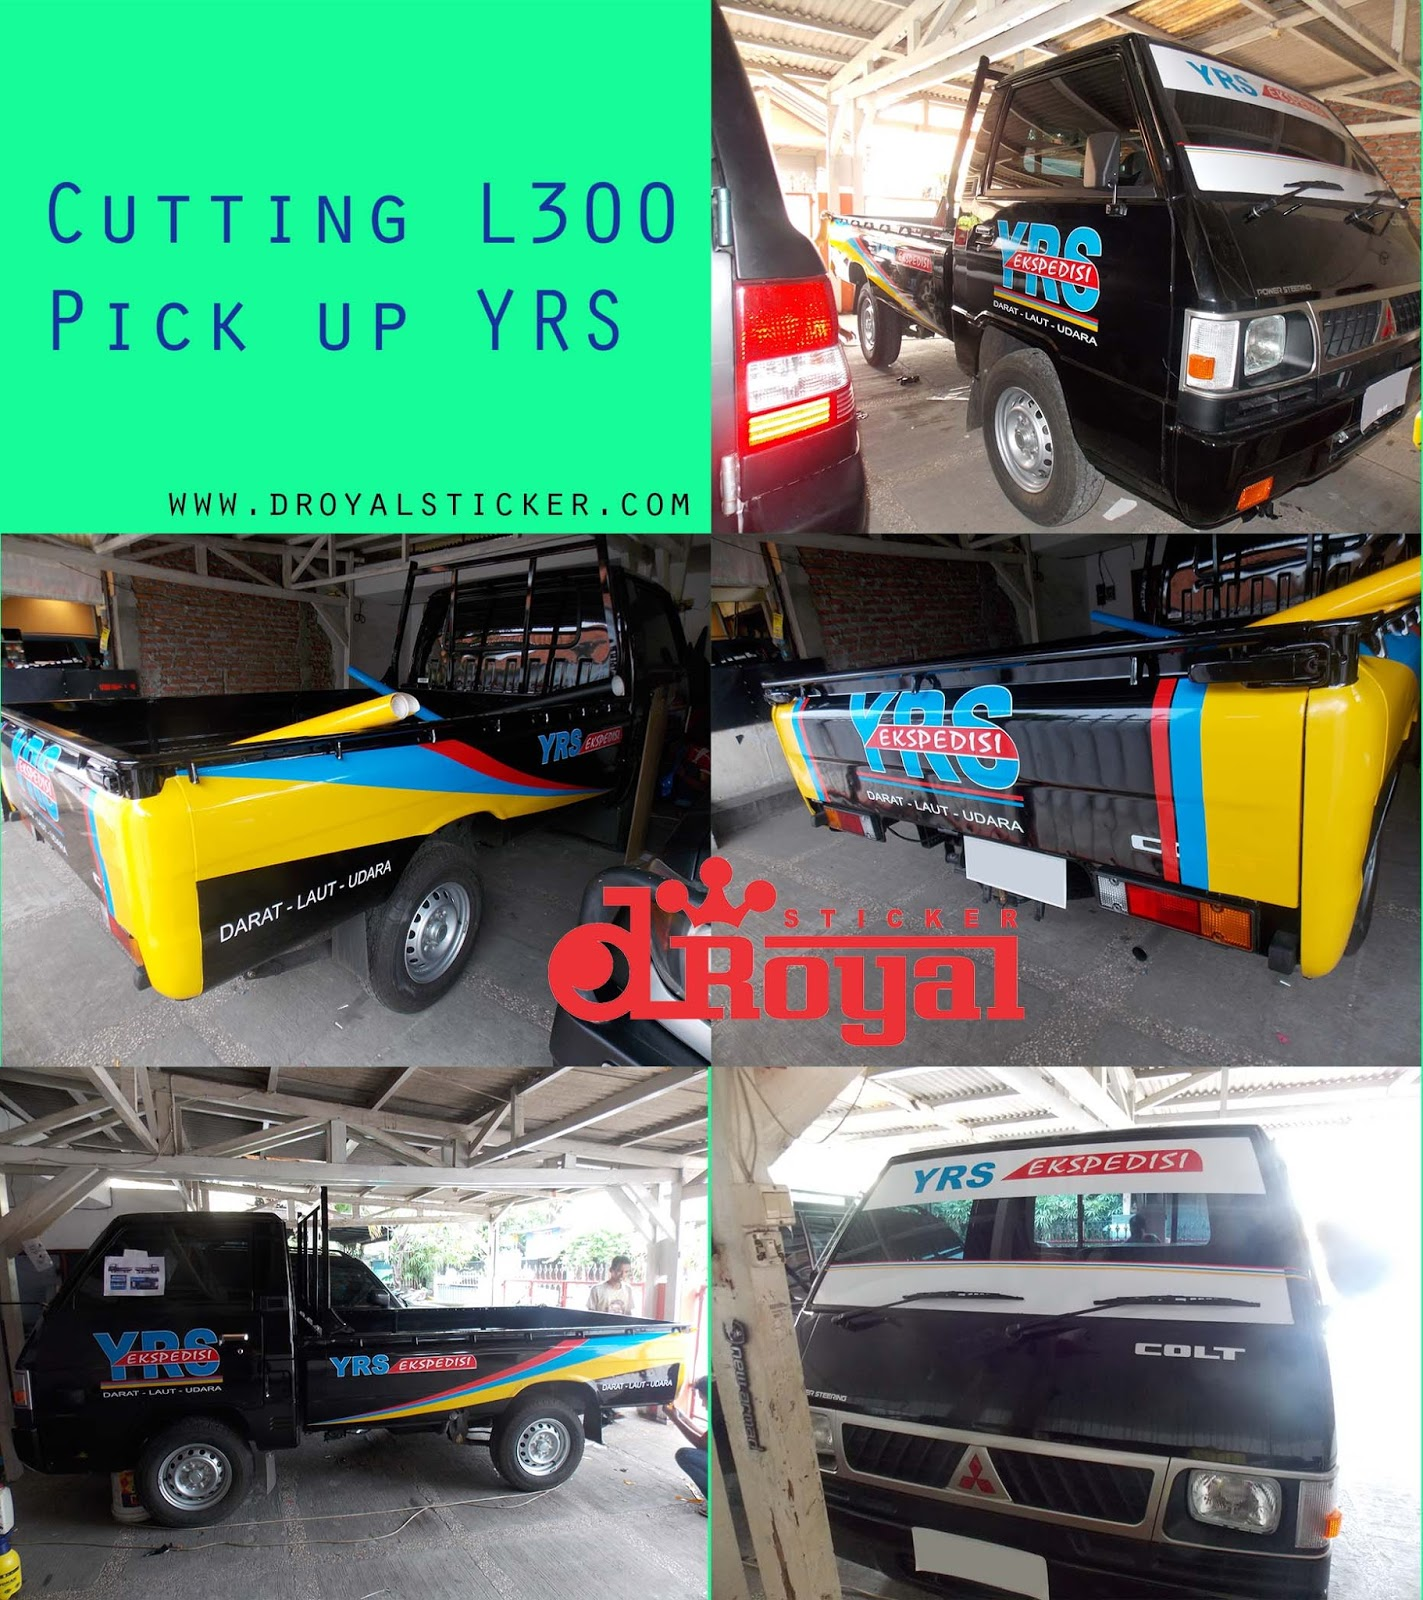 20 Best Mitsubishi Delica L300 Images On Pinterest: Top Cutting Sticker Mobil Pick Up L300 Terbaru